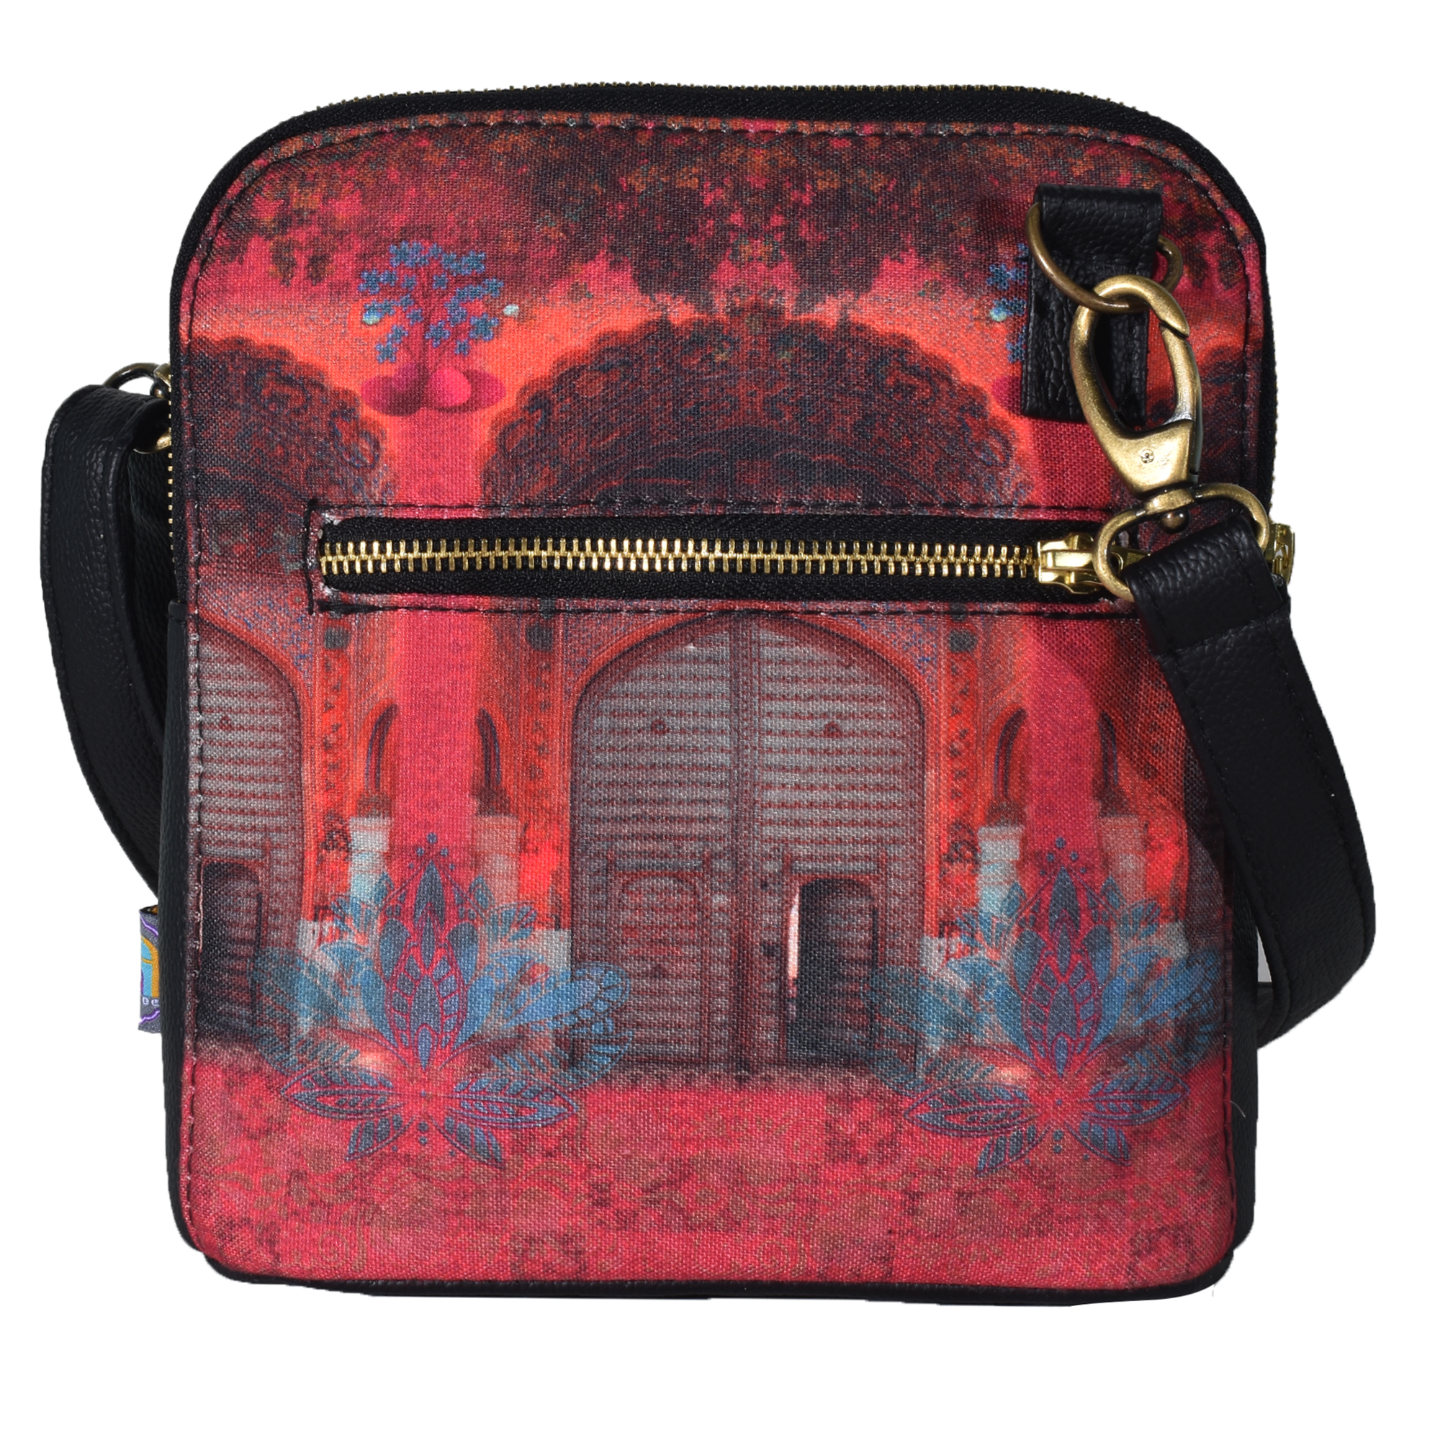 Pink Royal Door Design Crossbody Bag For Women And Girls